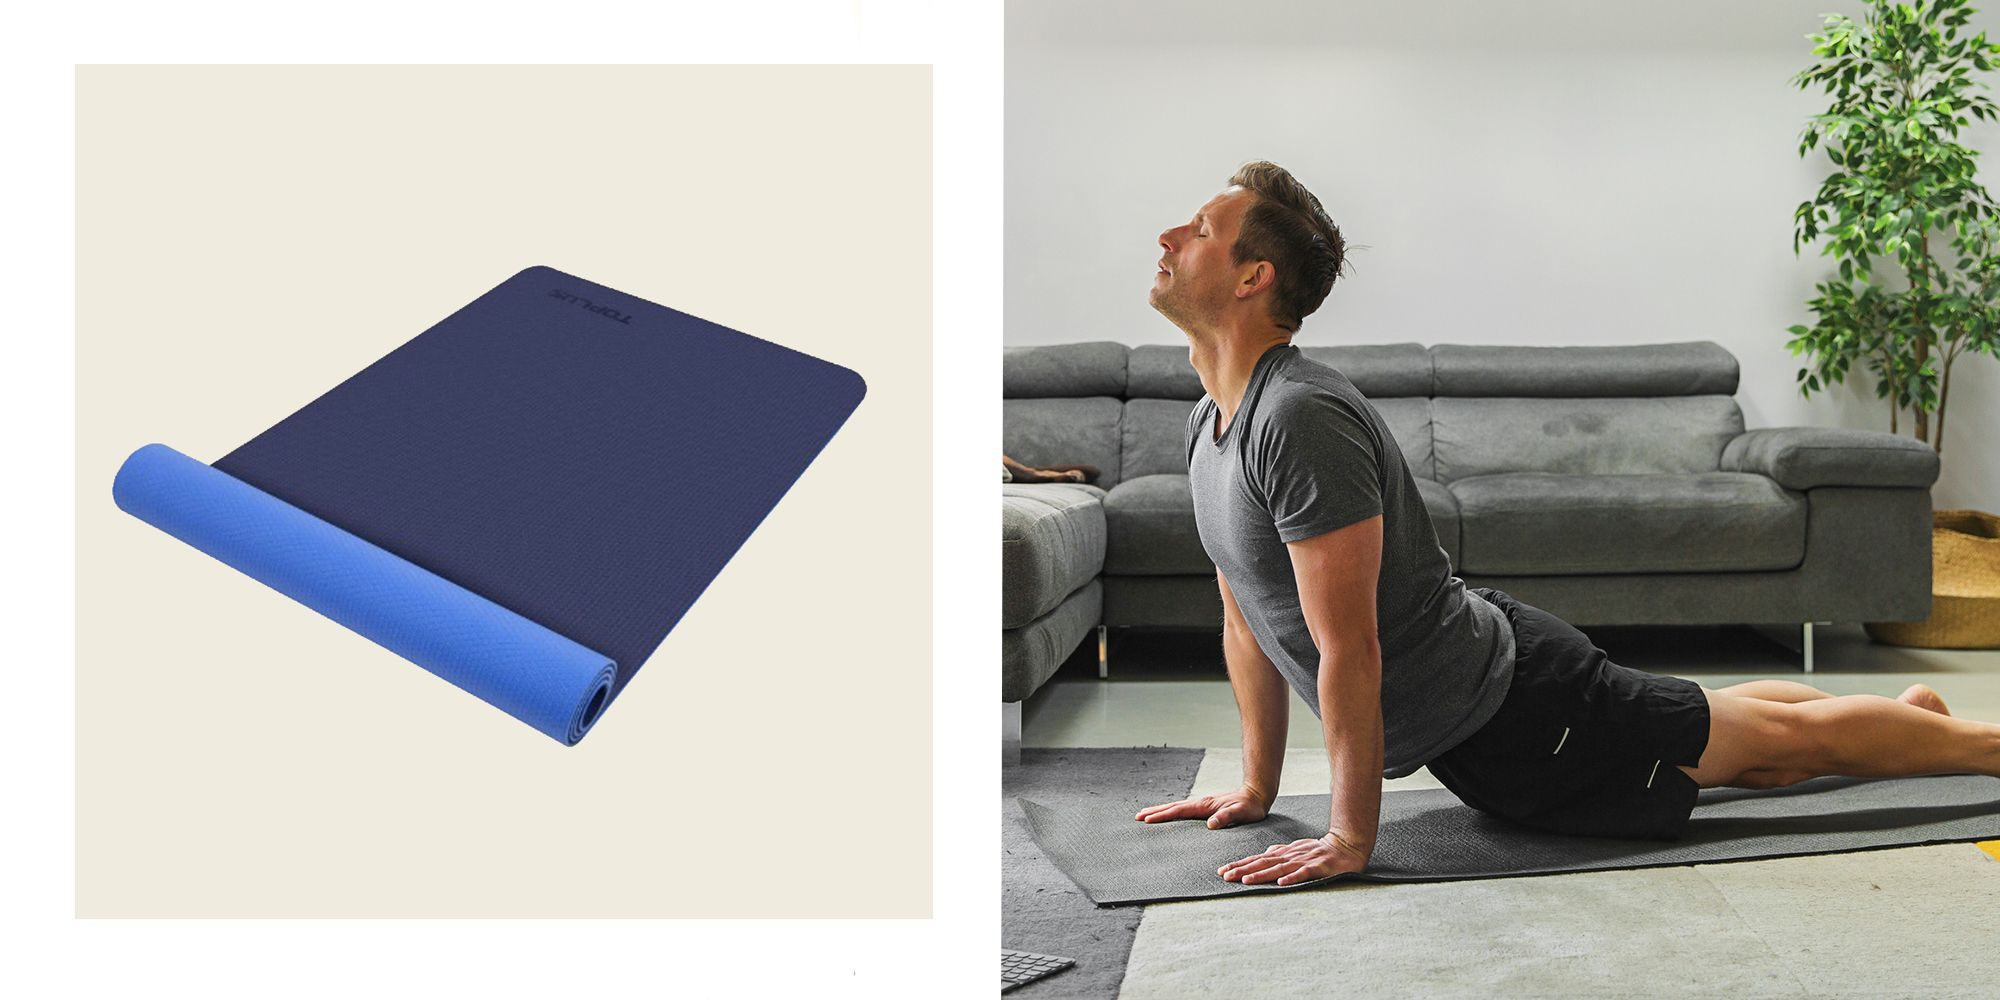 Workout and Yoga Mats That'll Make Your Sweaty Home Training Sessions More Enjoyable